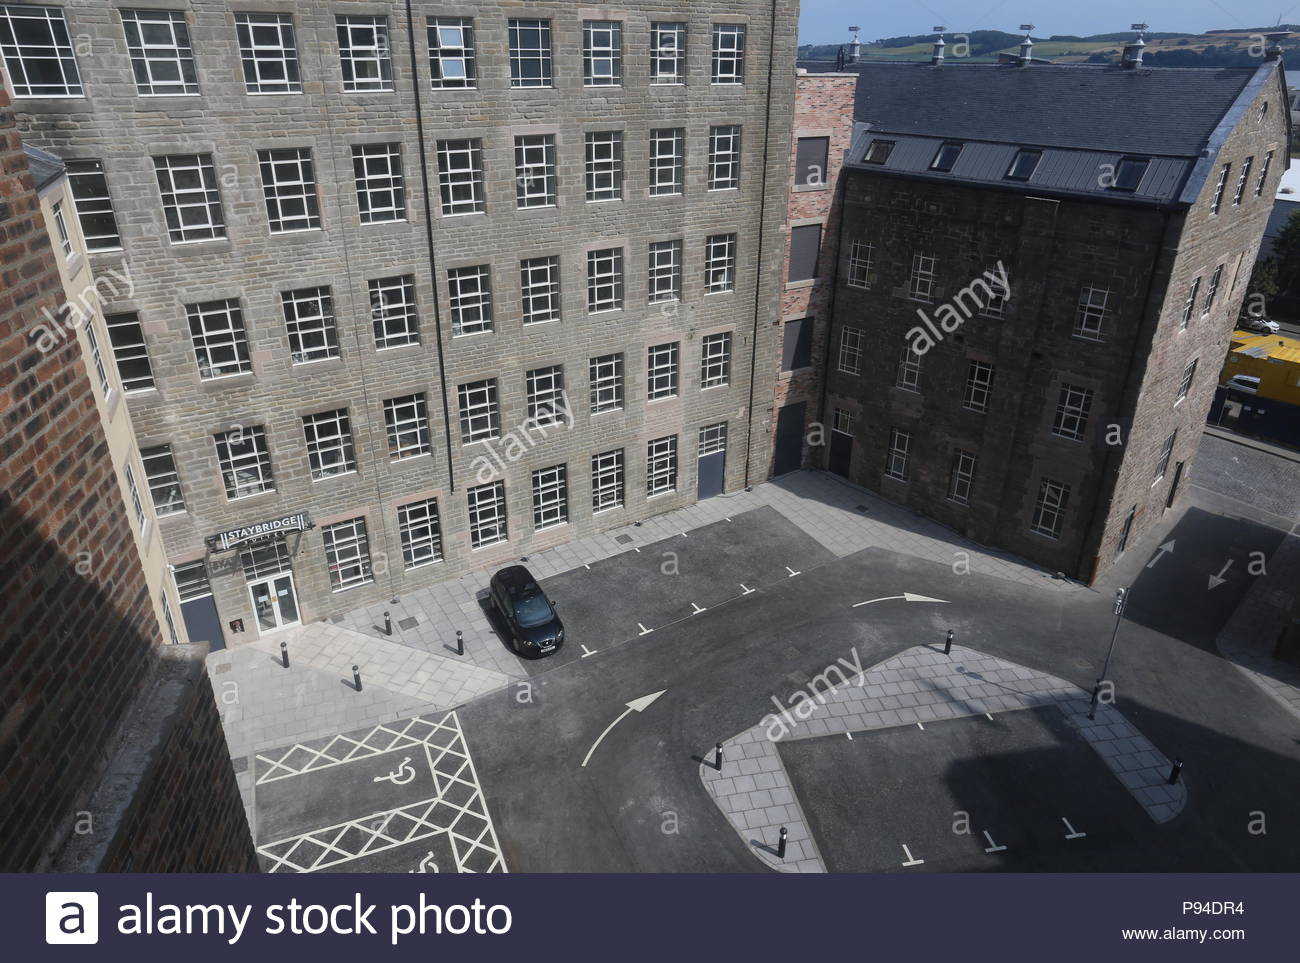 Elevated view of courtyard at Hotel Indigo Dundee Scotland  July 2018 - Stock Image